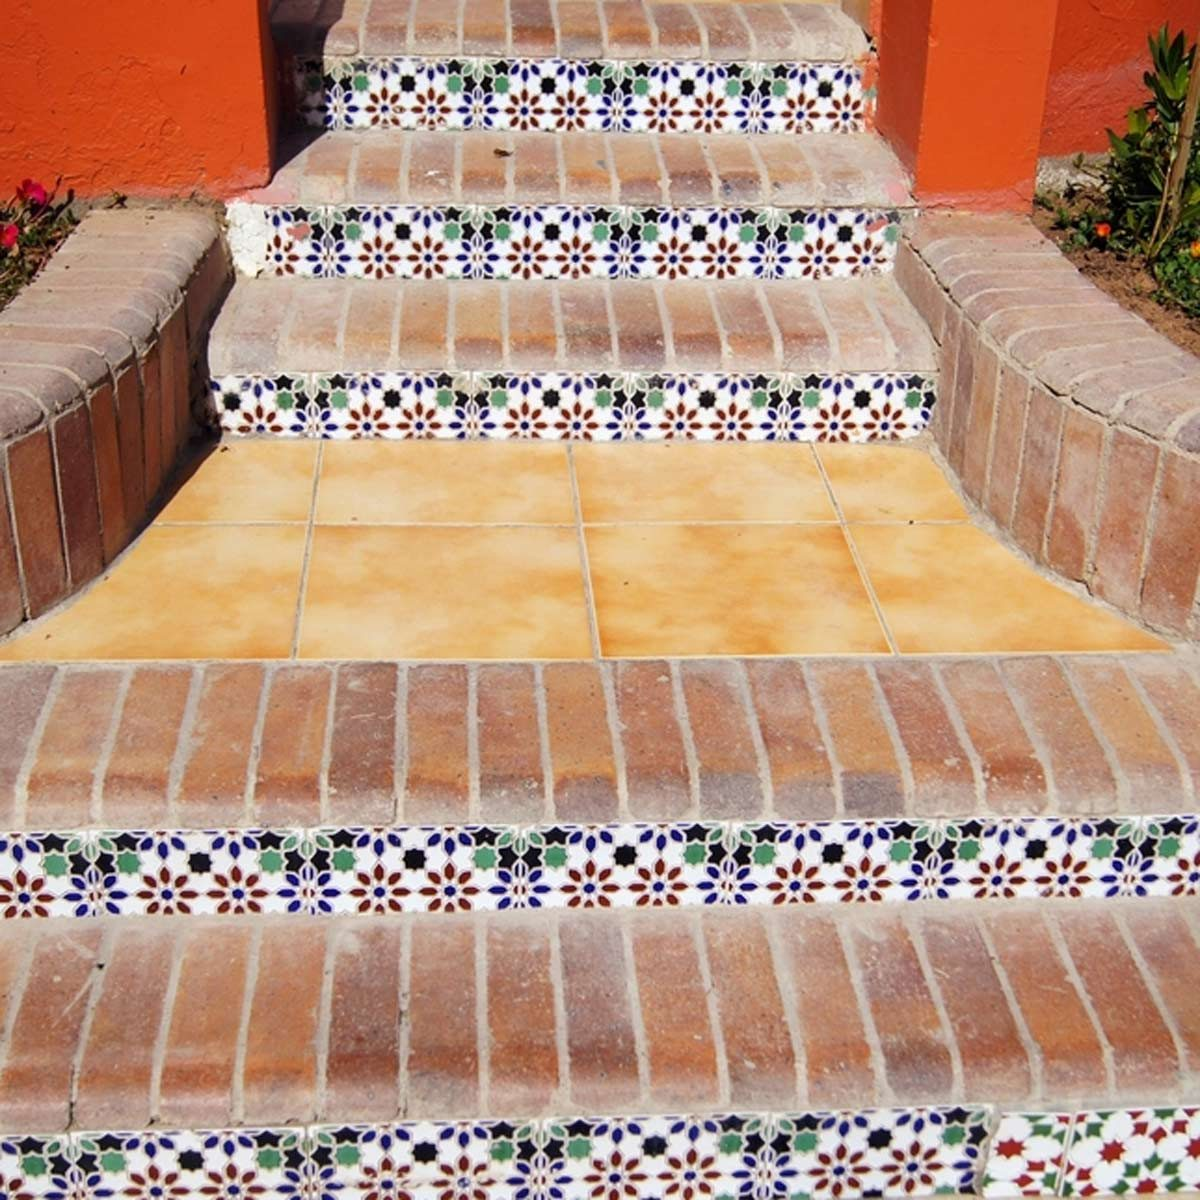 shutterstock_96136100 outdoor steps ceramic tile